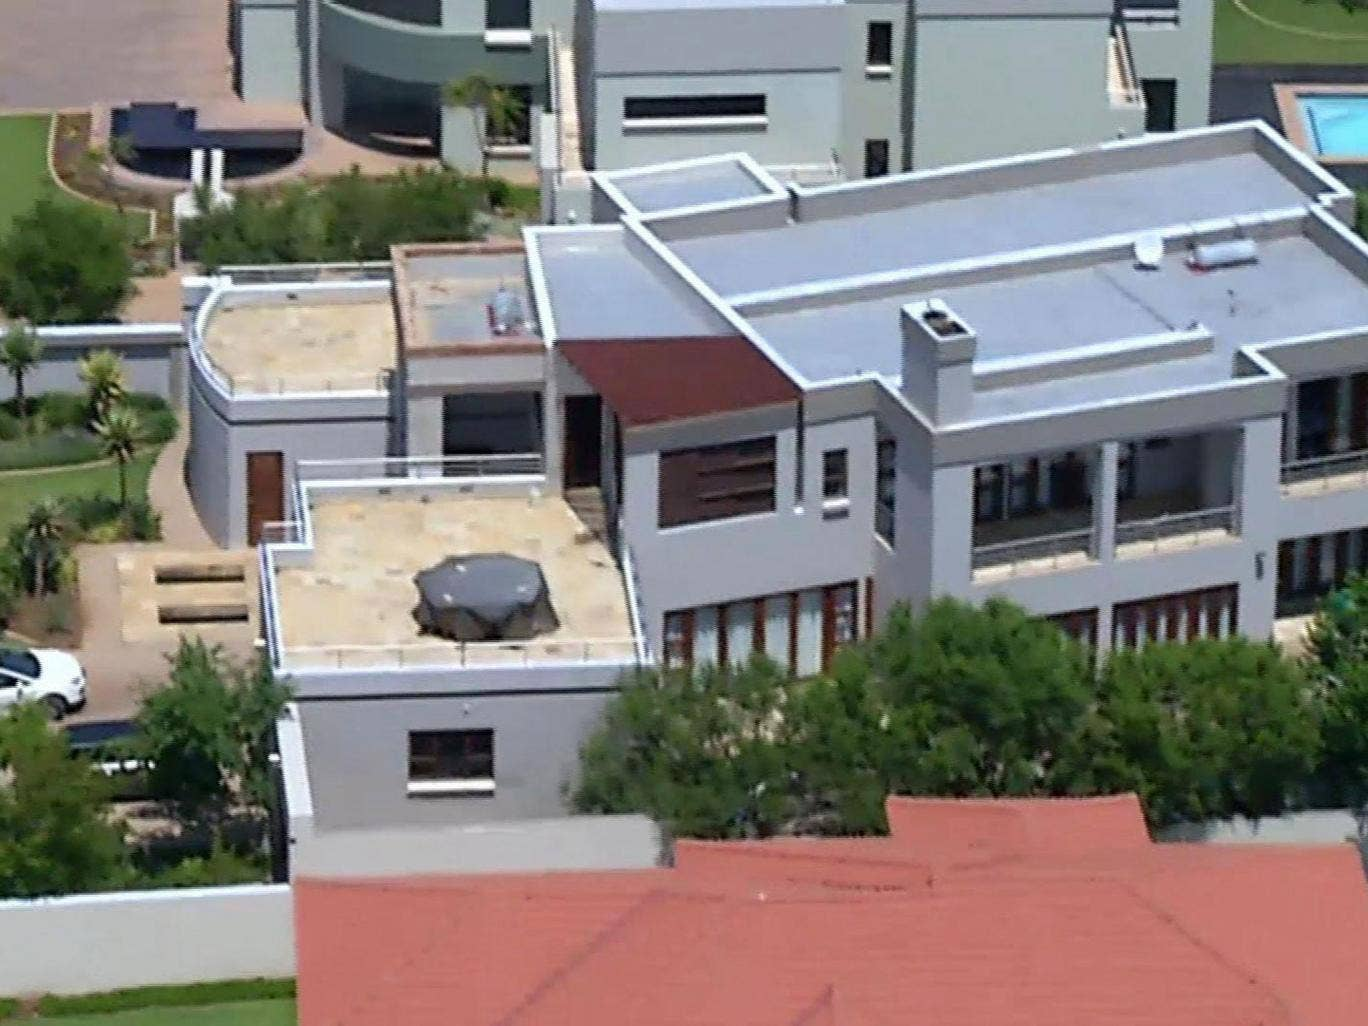 Scene of the tragedy: the house where Oscar Pistorius lived with Reeva Steenkamp in Silver Woods is heavily protected